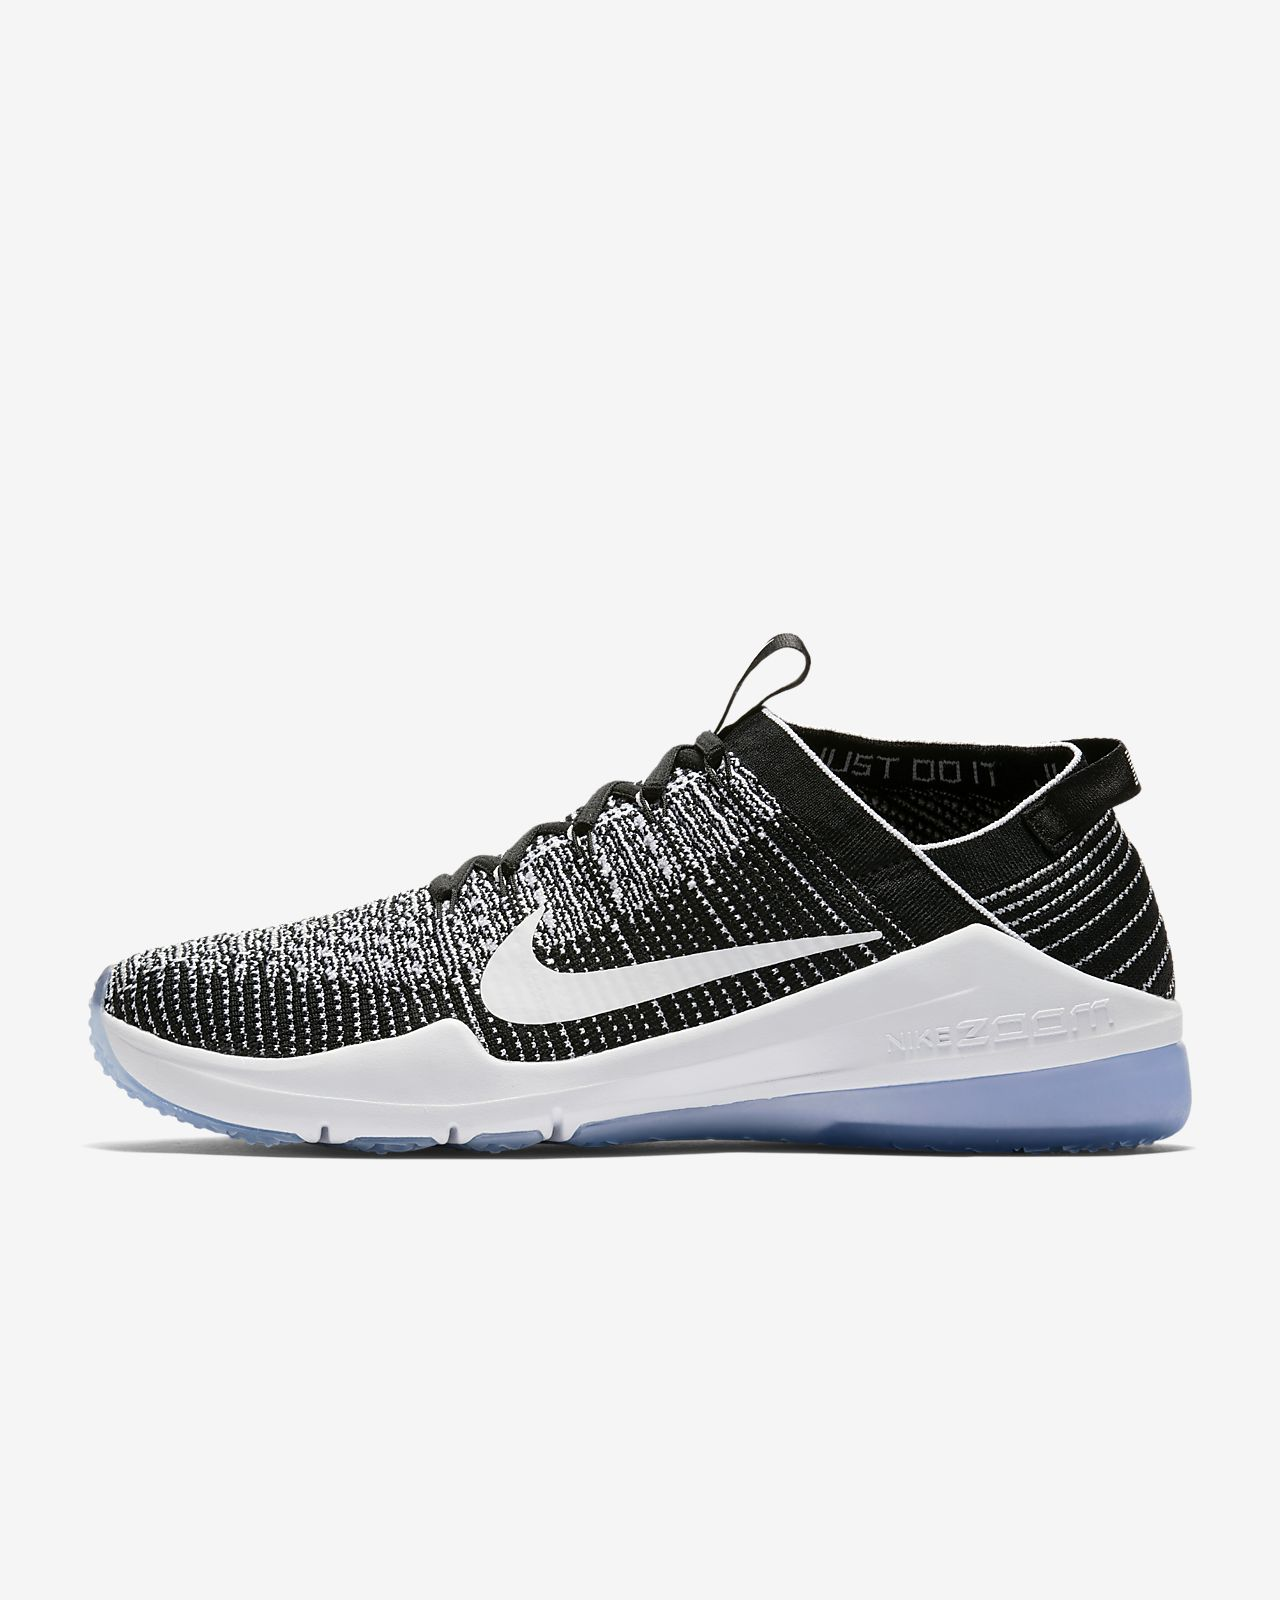 Nike Air Zoom Fearless Flyknit 2 Damesschoen voor fitness, training en boksen